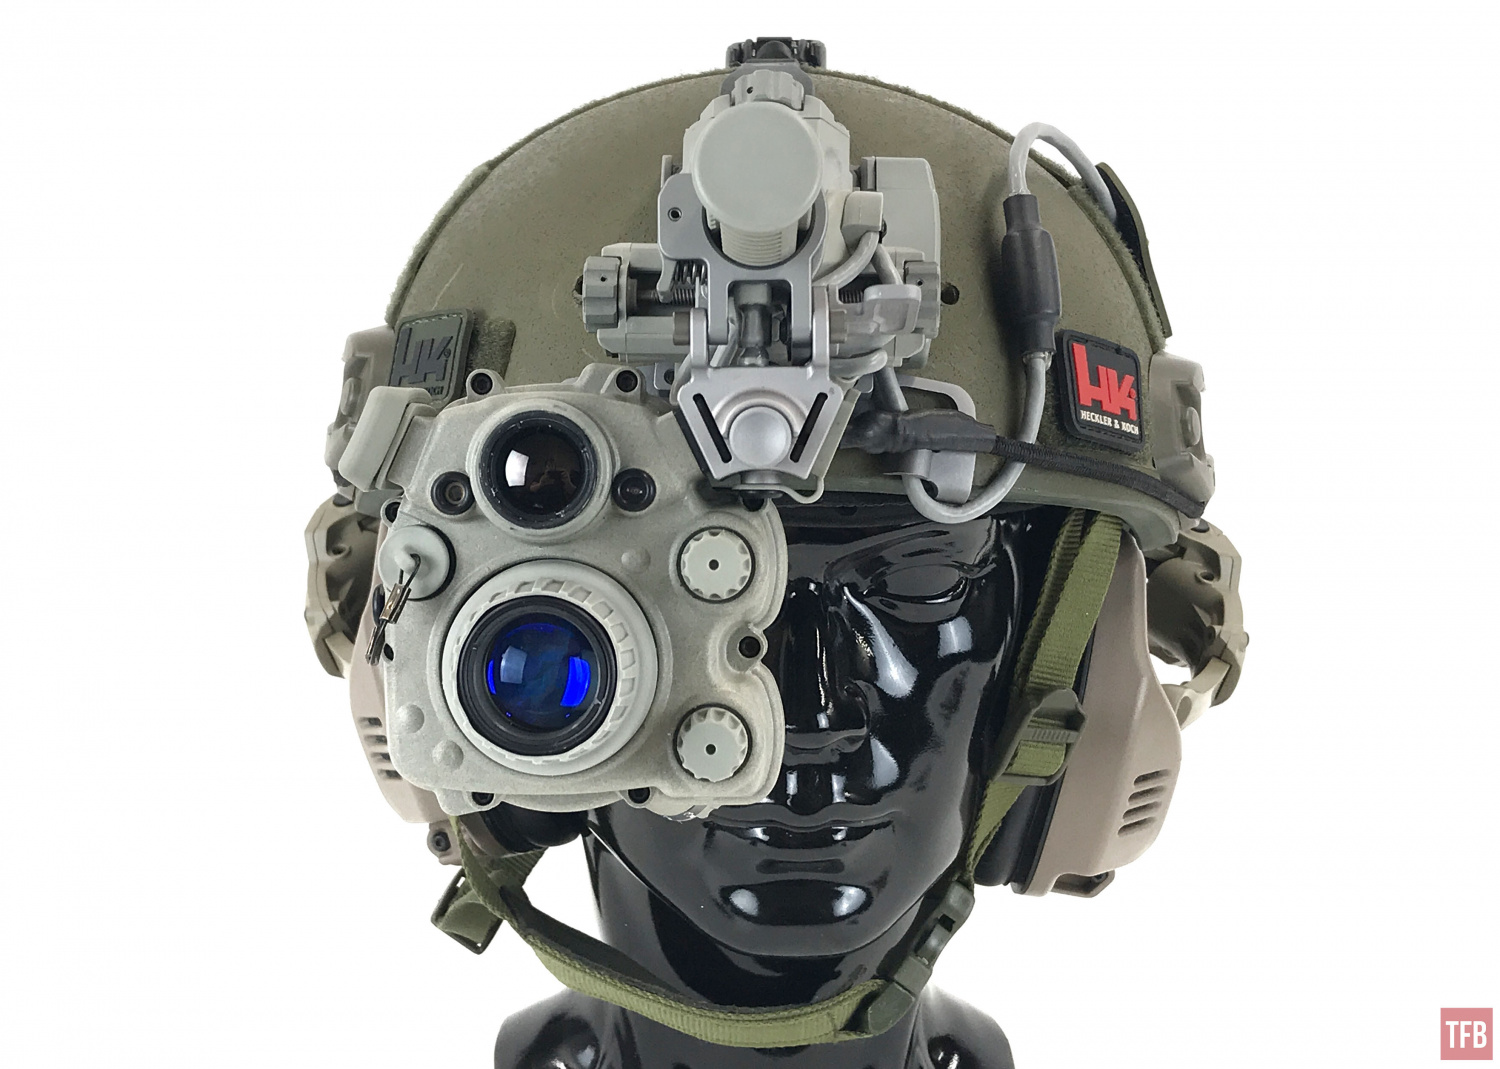 ENVG PSQ-20 mounted on helmet